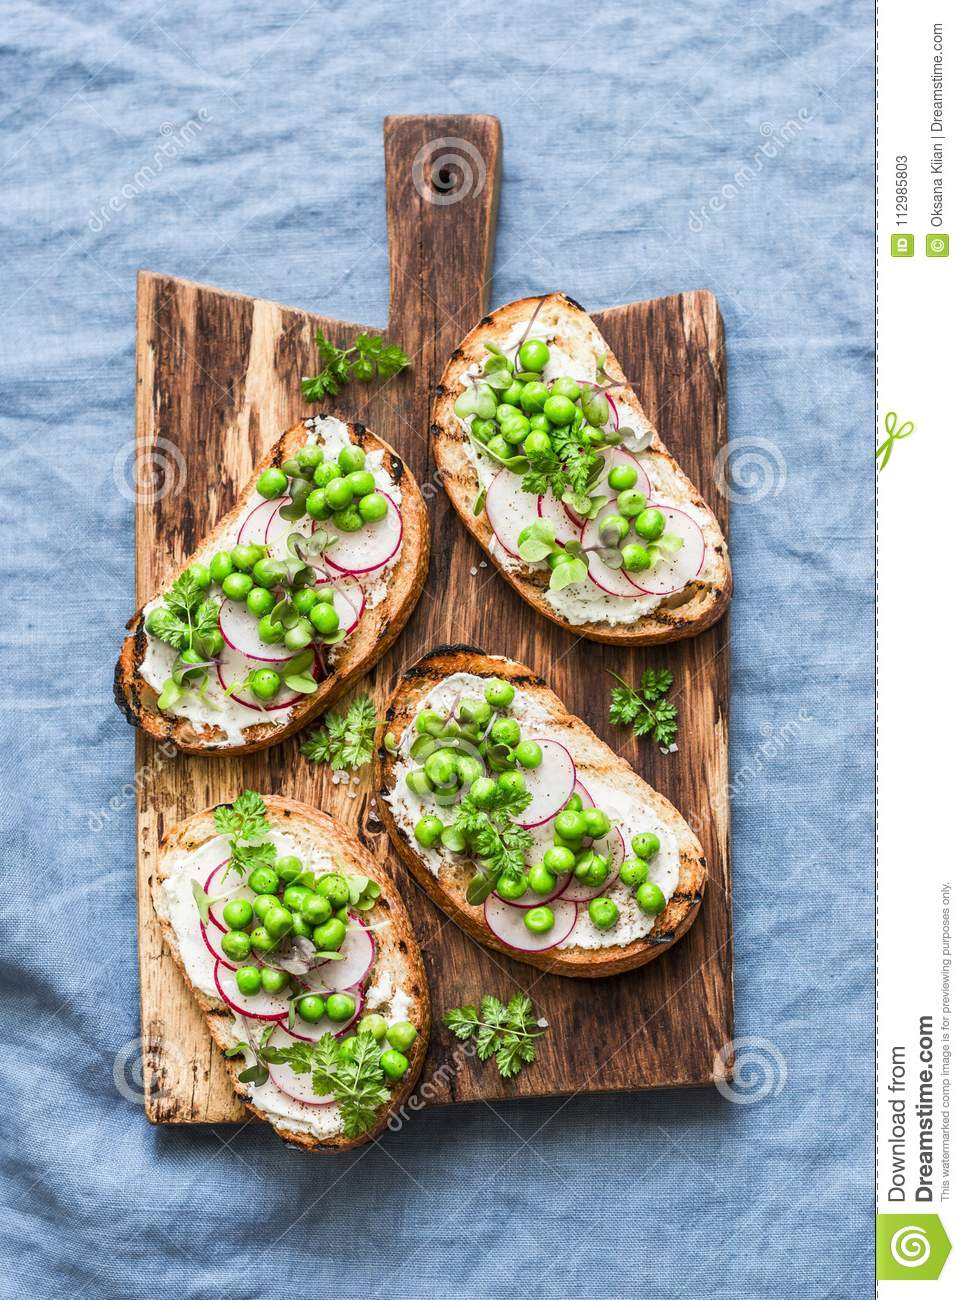 Cream cheese, green peas, radishes and micro greens spring sandwiches on a cutting board. Healthy eating, slimming, diet lifestyle